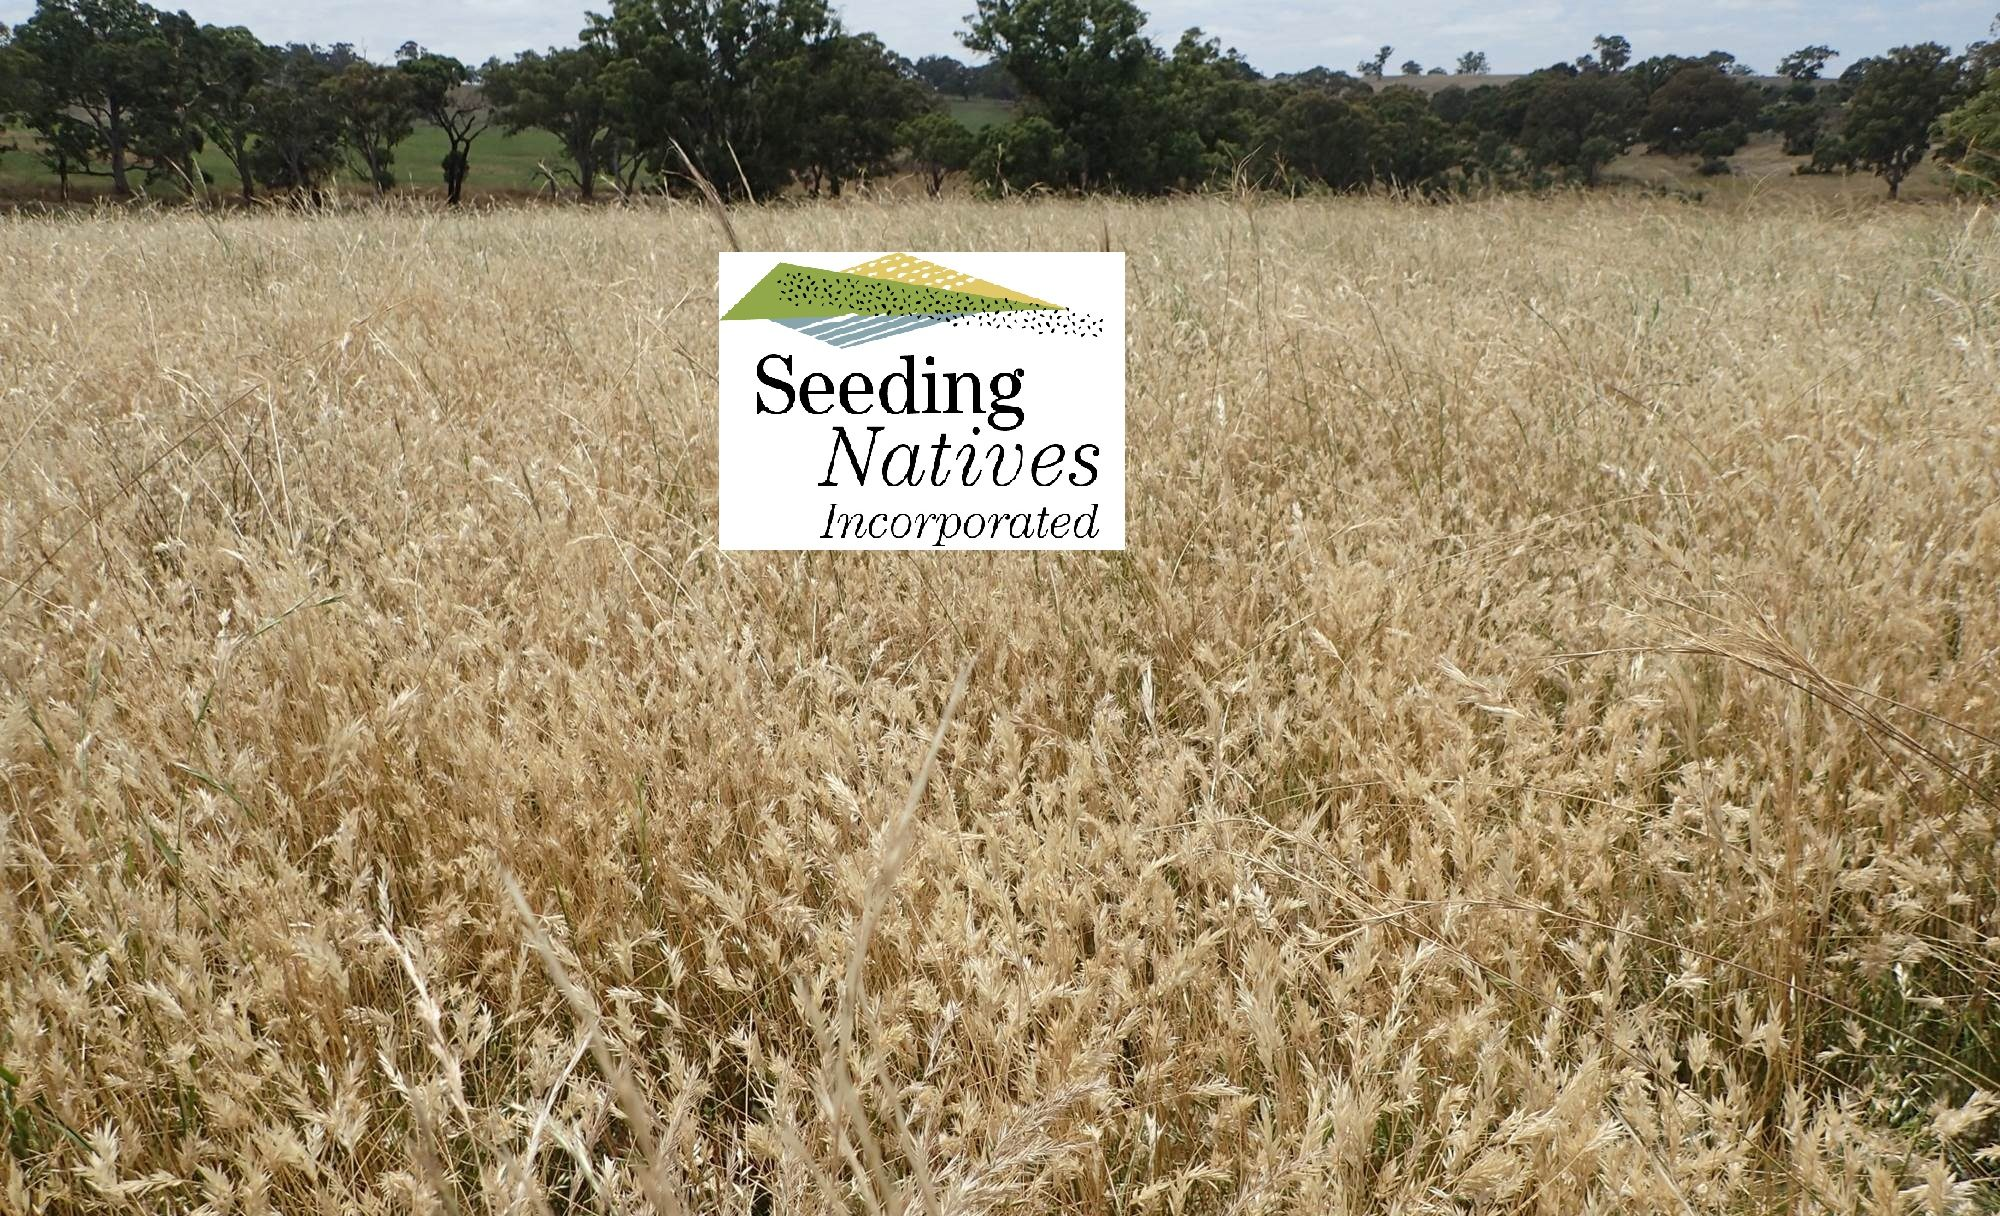 A not for profit business specialising in direct seeding and the ecological restoration of native grasslands and associated ecosystems